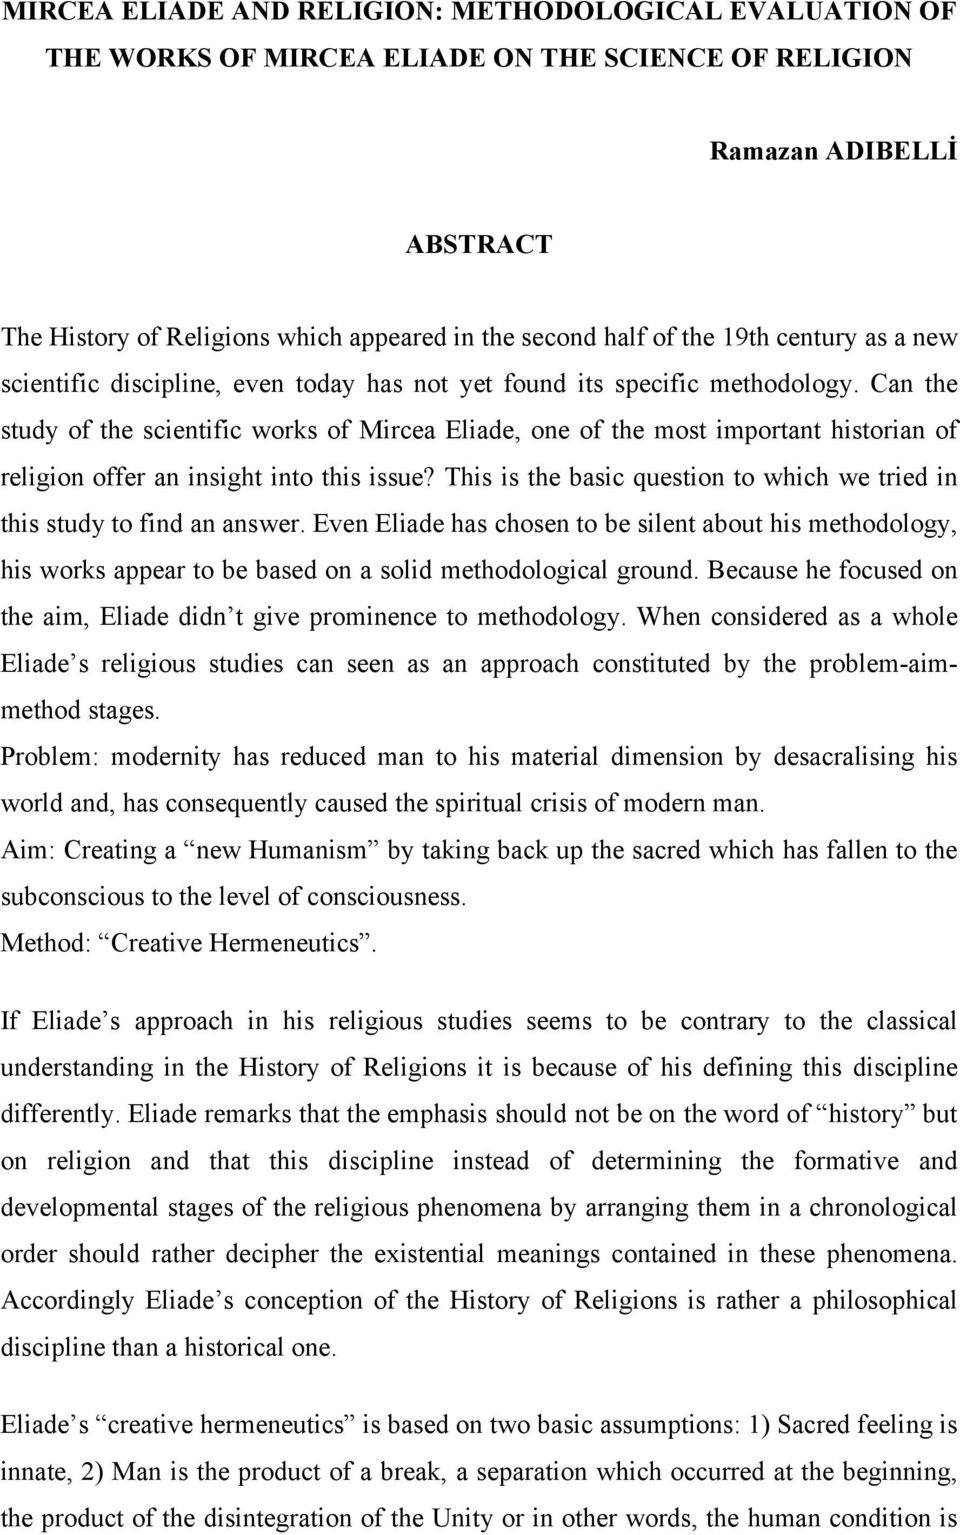 Can the study of the scientific works of Mircea Eliade, one of the most important historian of religion offer an insight into this issue?